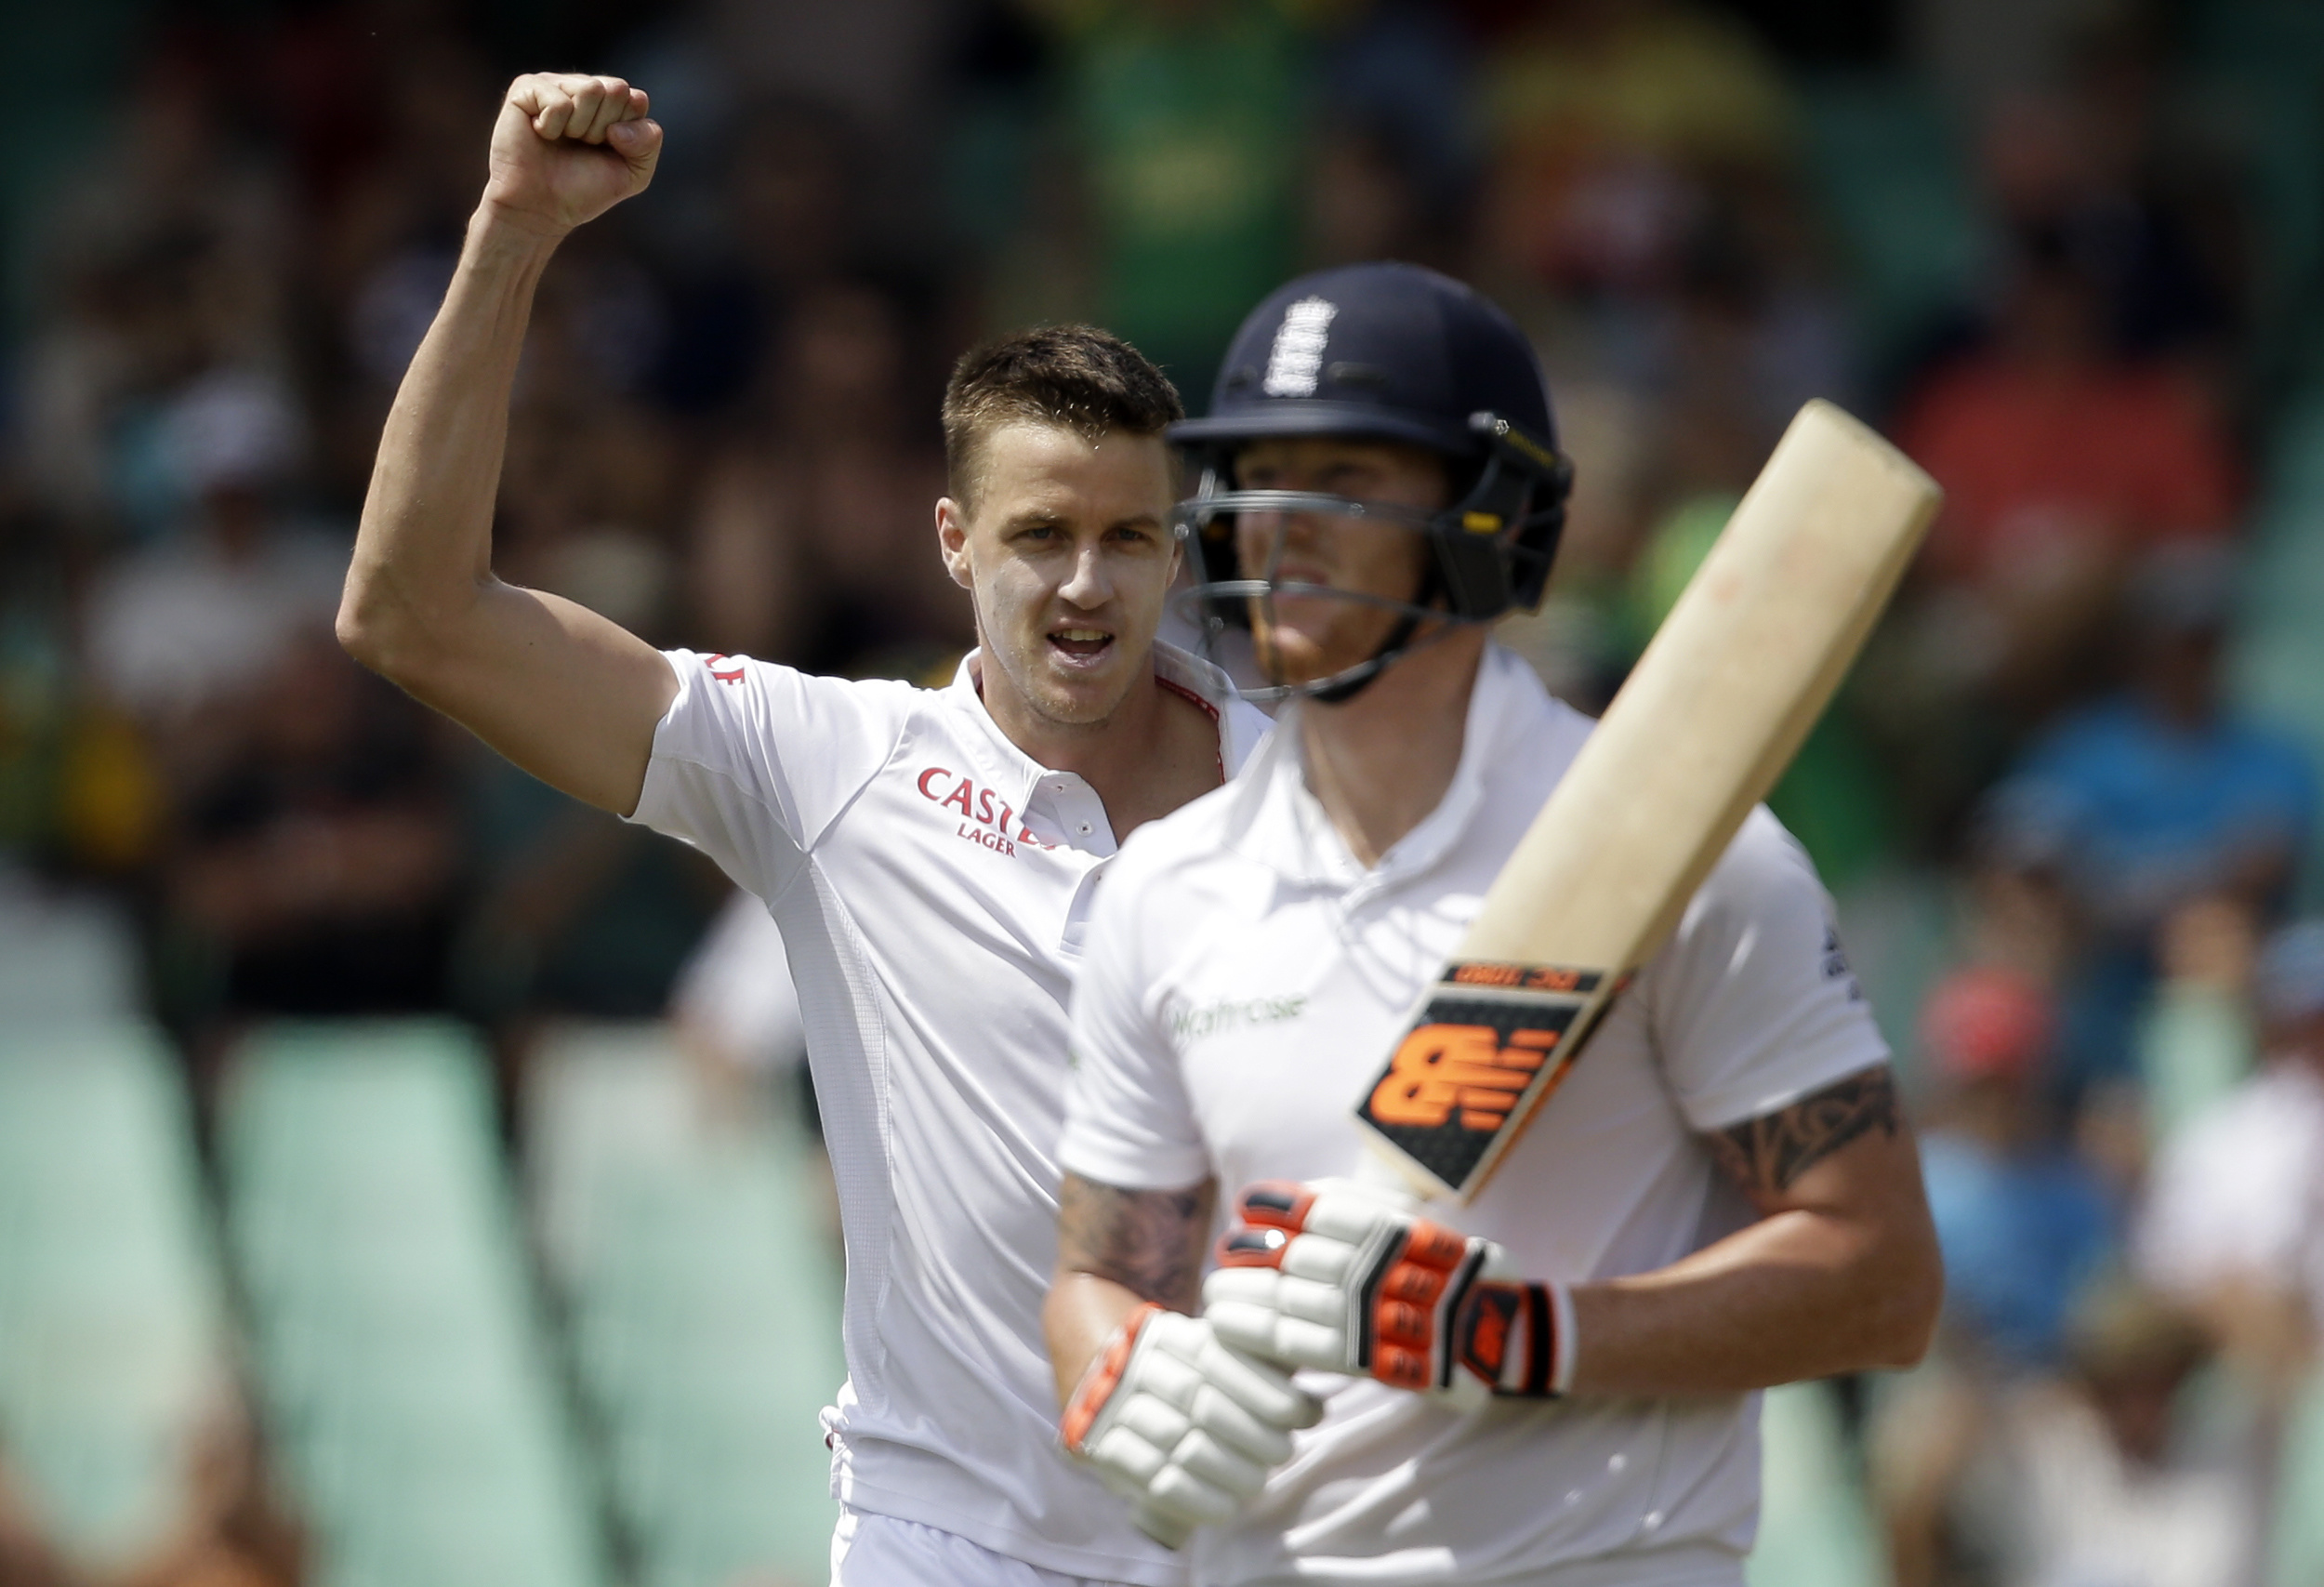 South Africau0092s bowler Morne Morkel, left, clenches his fist after dismissing Englandu0092s batsman Ben Stokes, right, for 21 runs on the second day of their first cricket test match at Kingsmead in Durban, South Africa, Sunday, December 27, 2015. Photo: AP